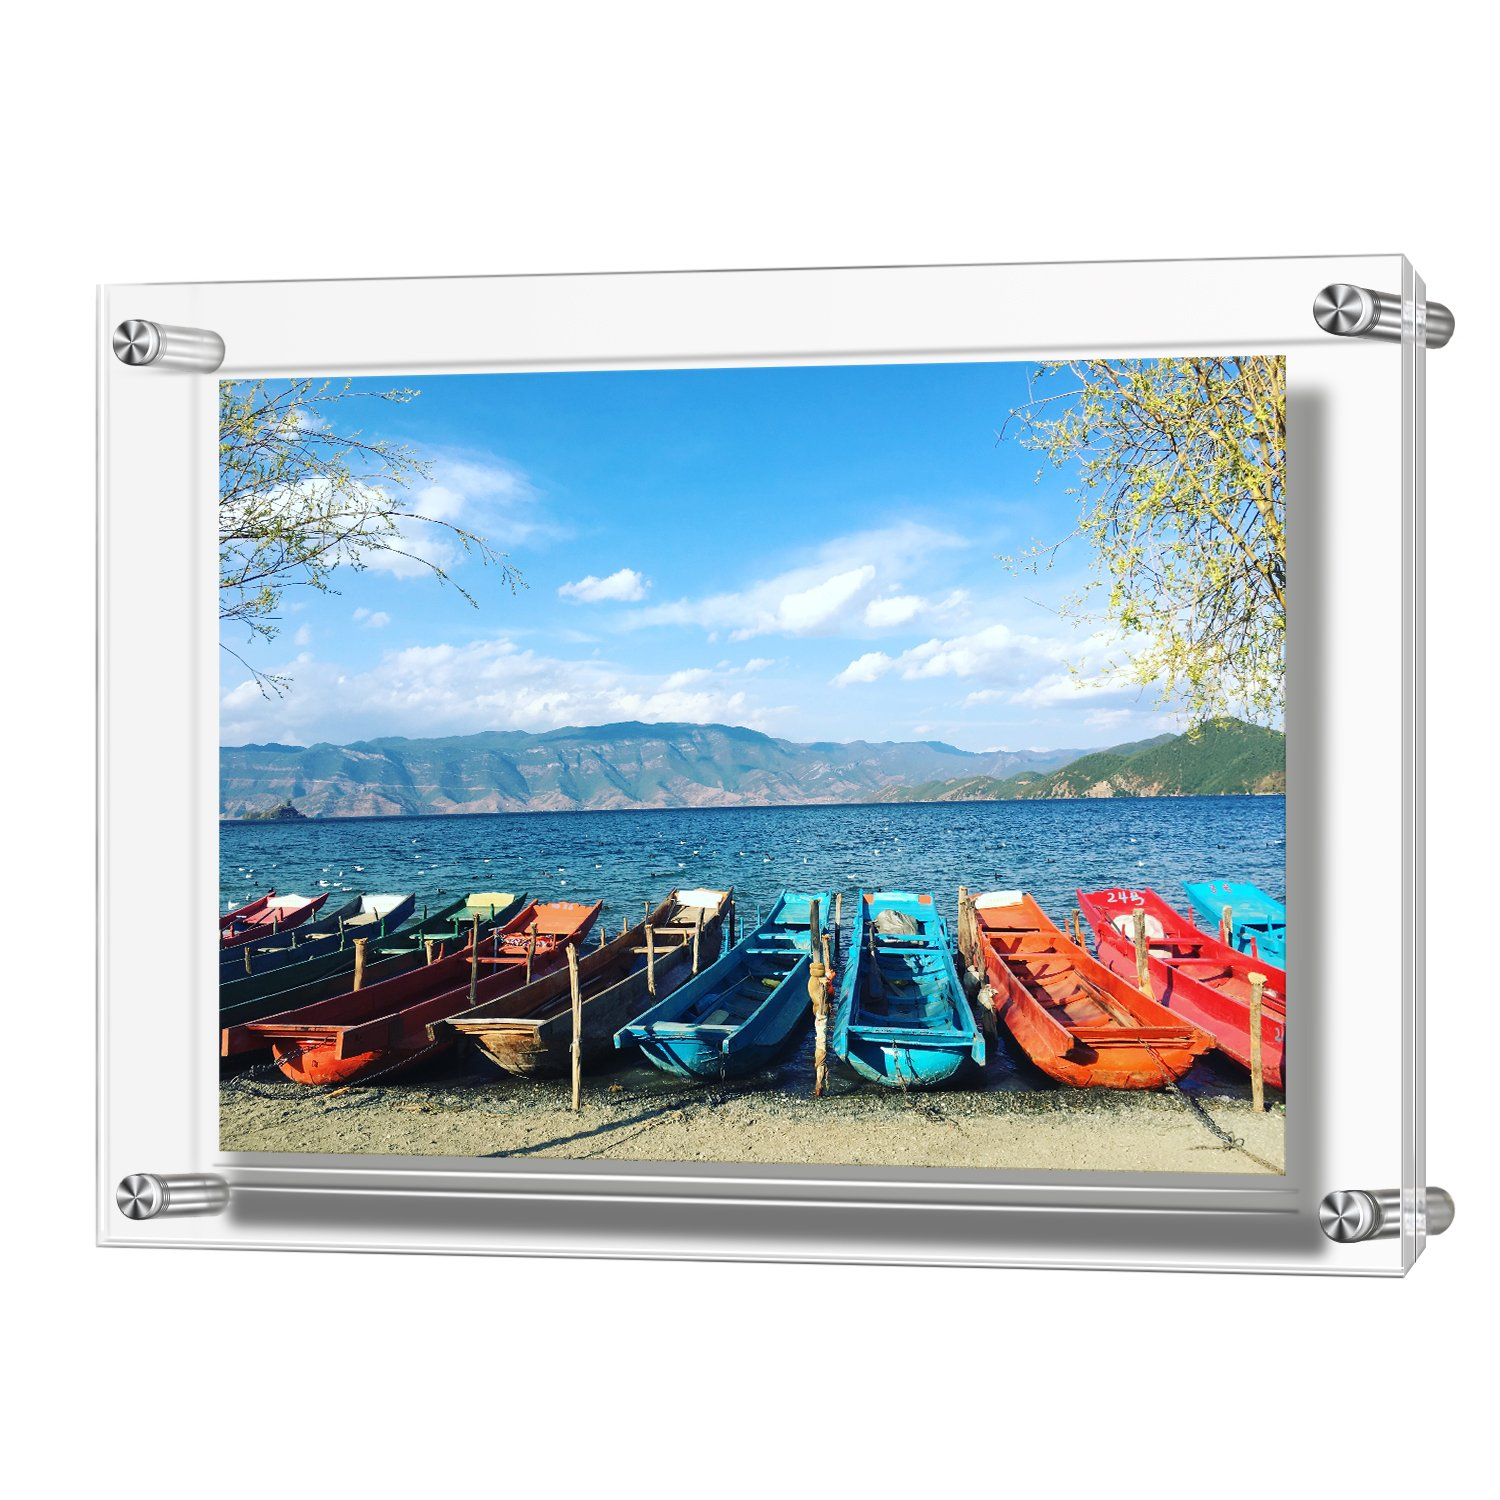 Acrylic Picture Frame, Double Panel Clear Wall Mount Picture Frames Holds 32 x 23 cm Pictures